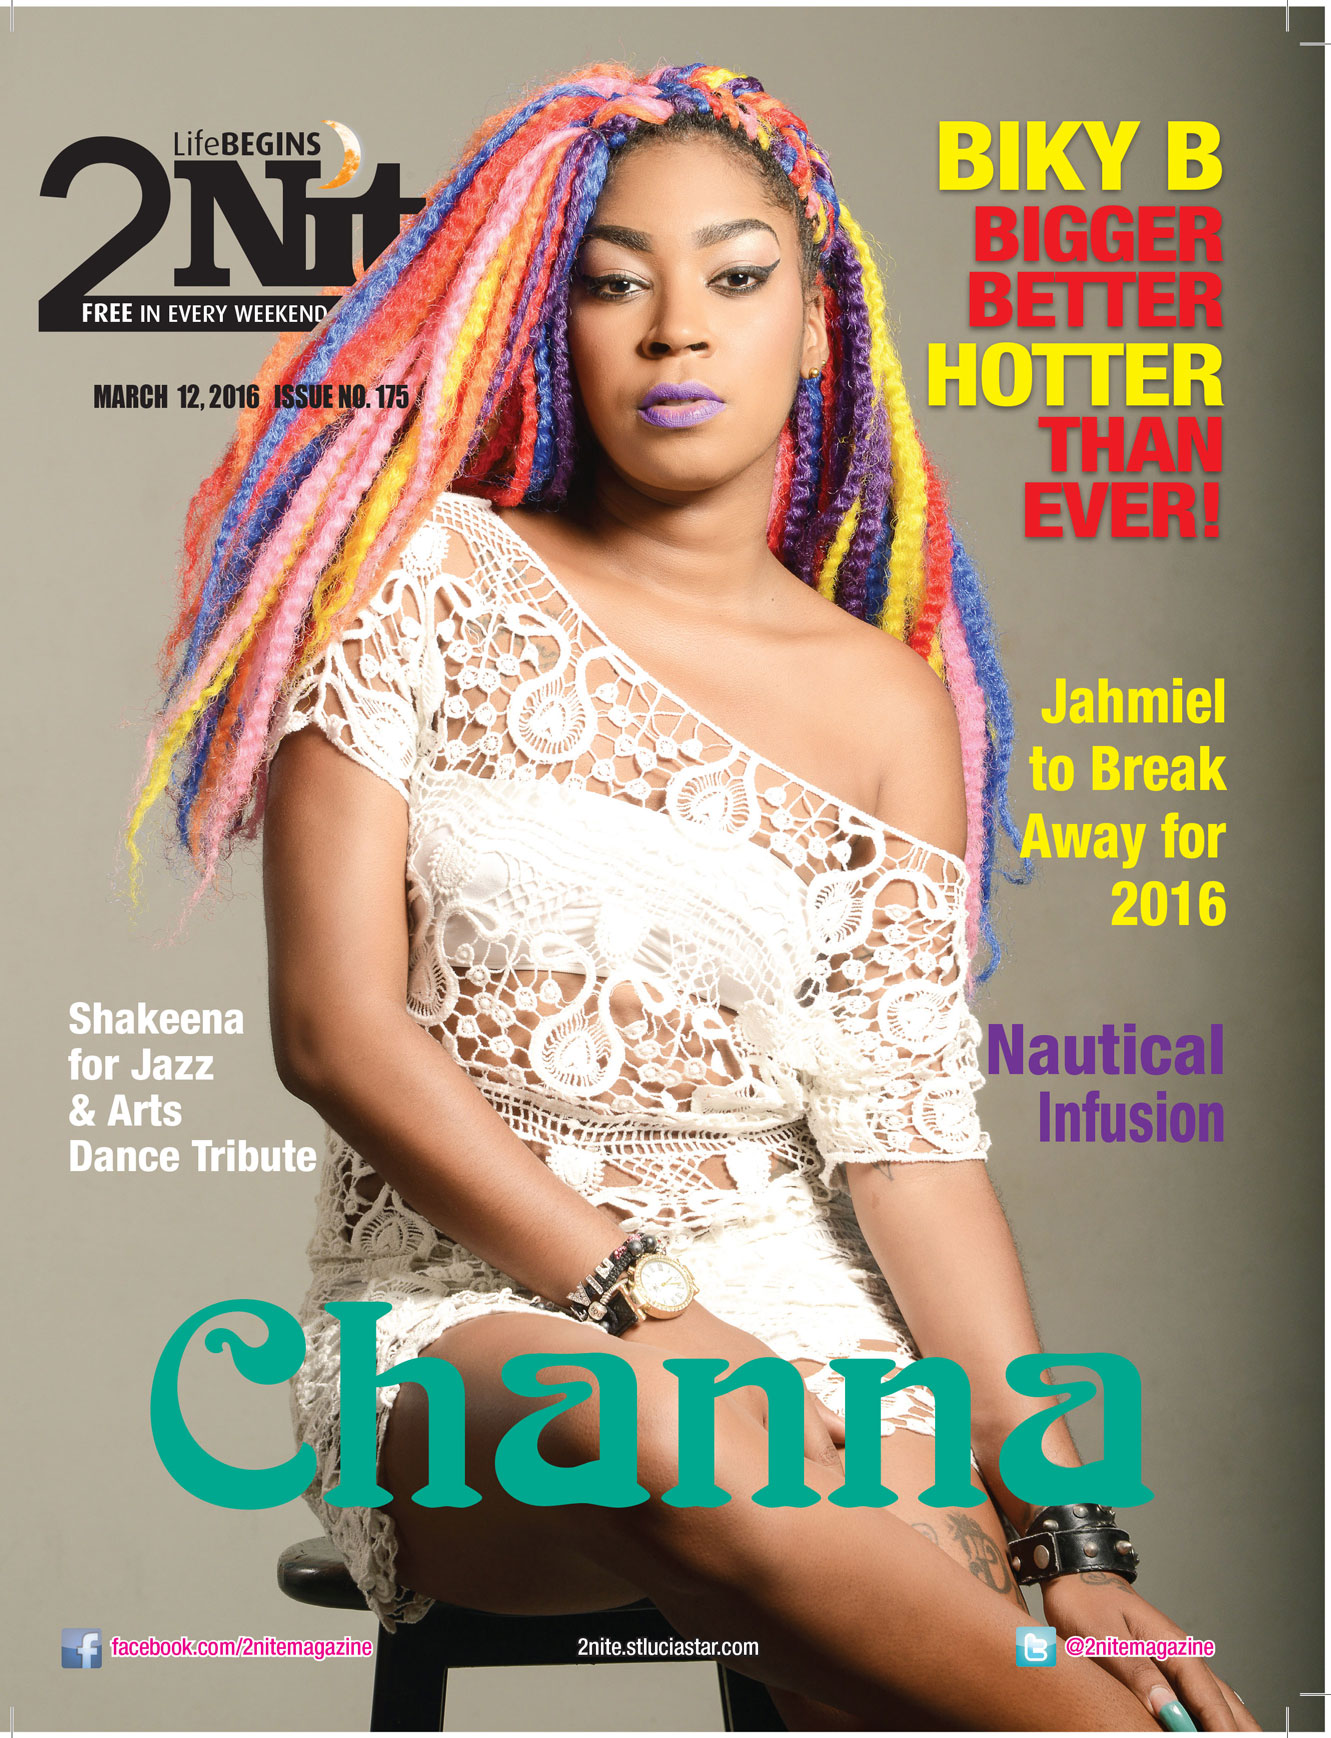 2Nite Magazine Saturday March 12th, 2016 ~ Issue no. 175